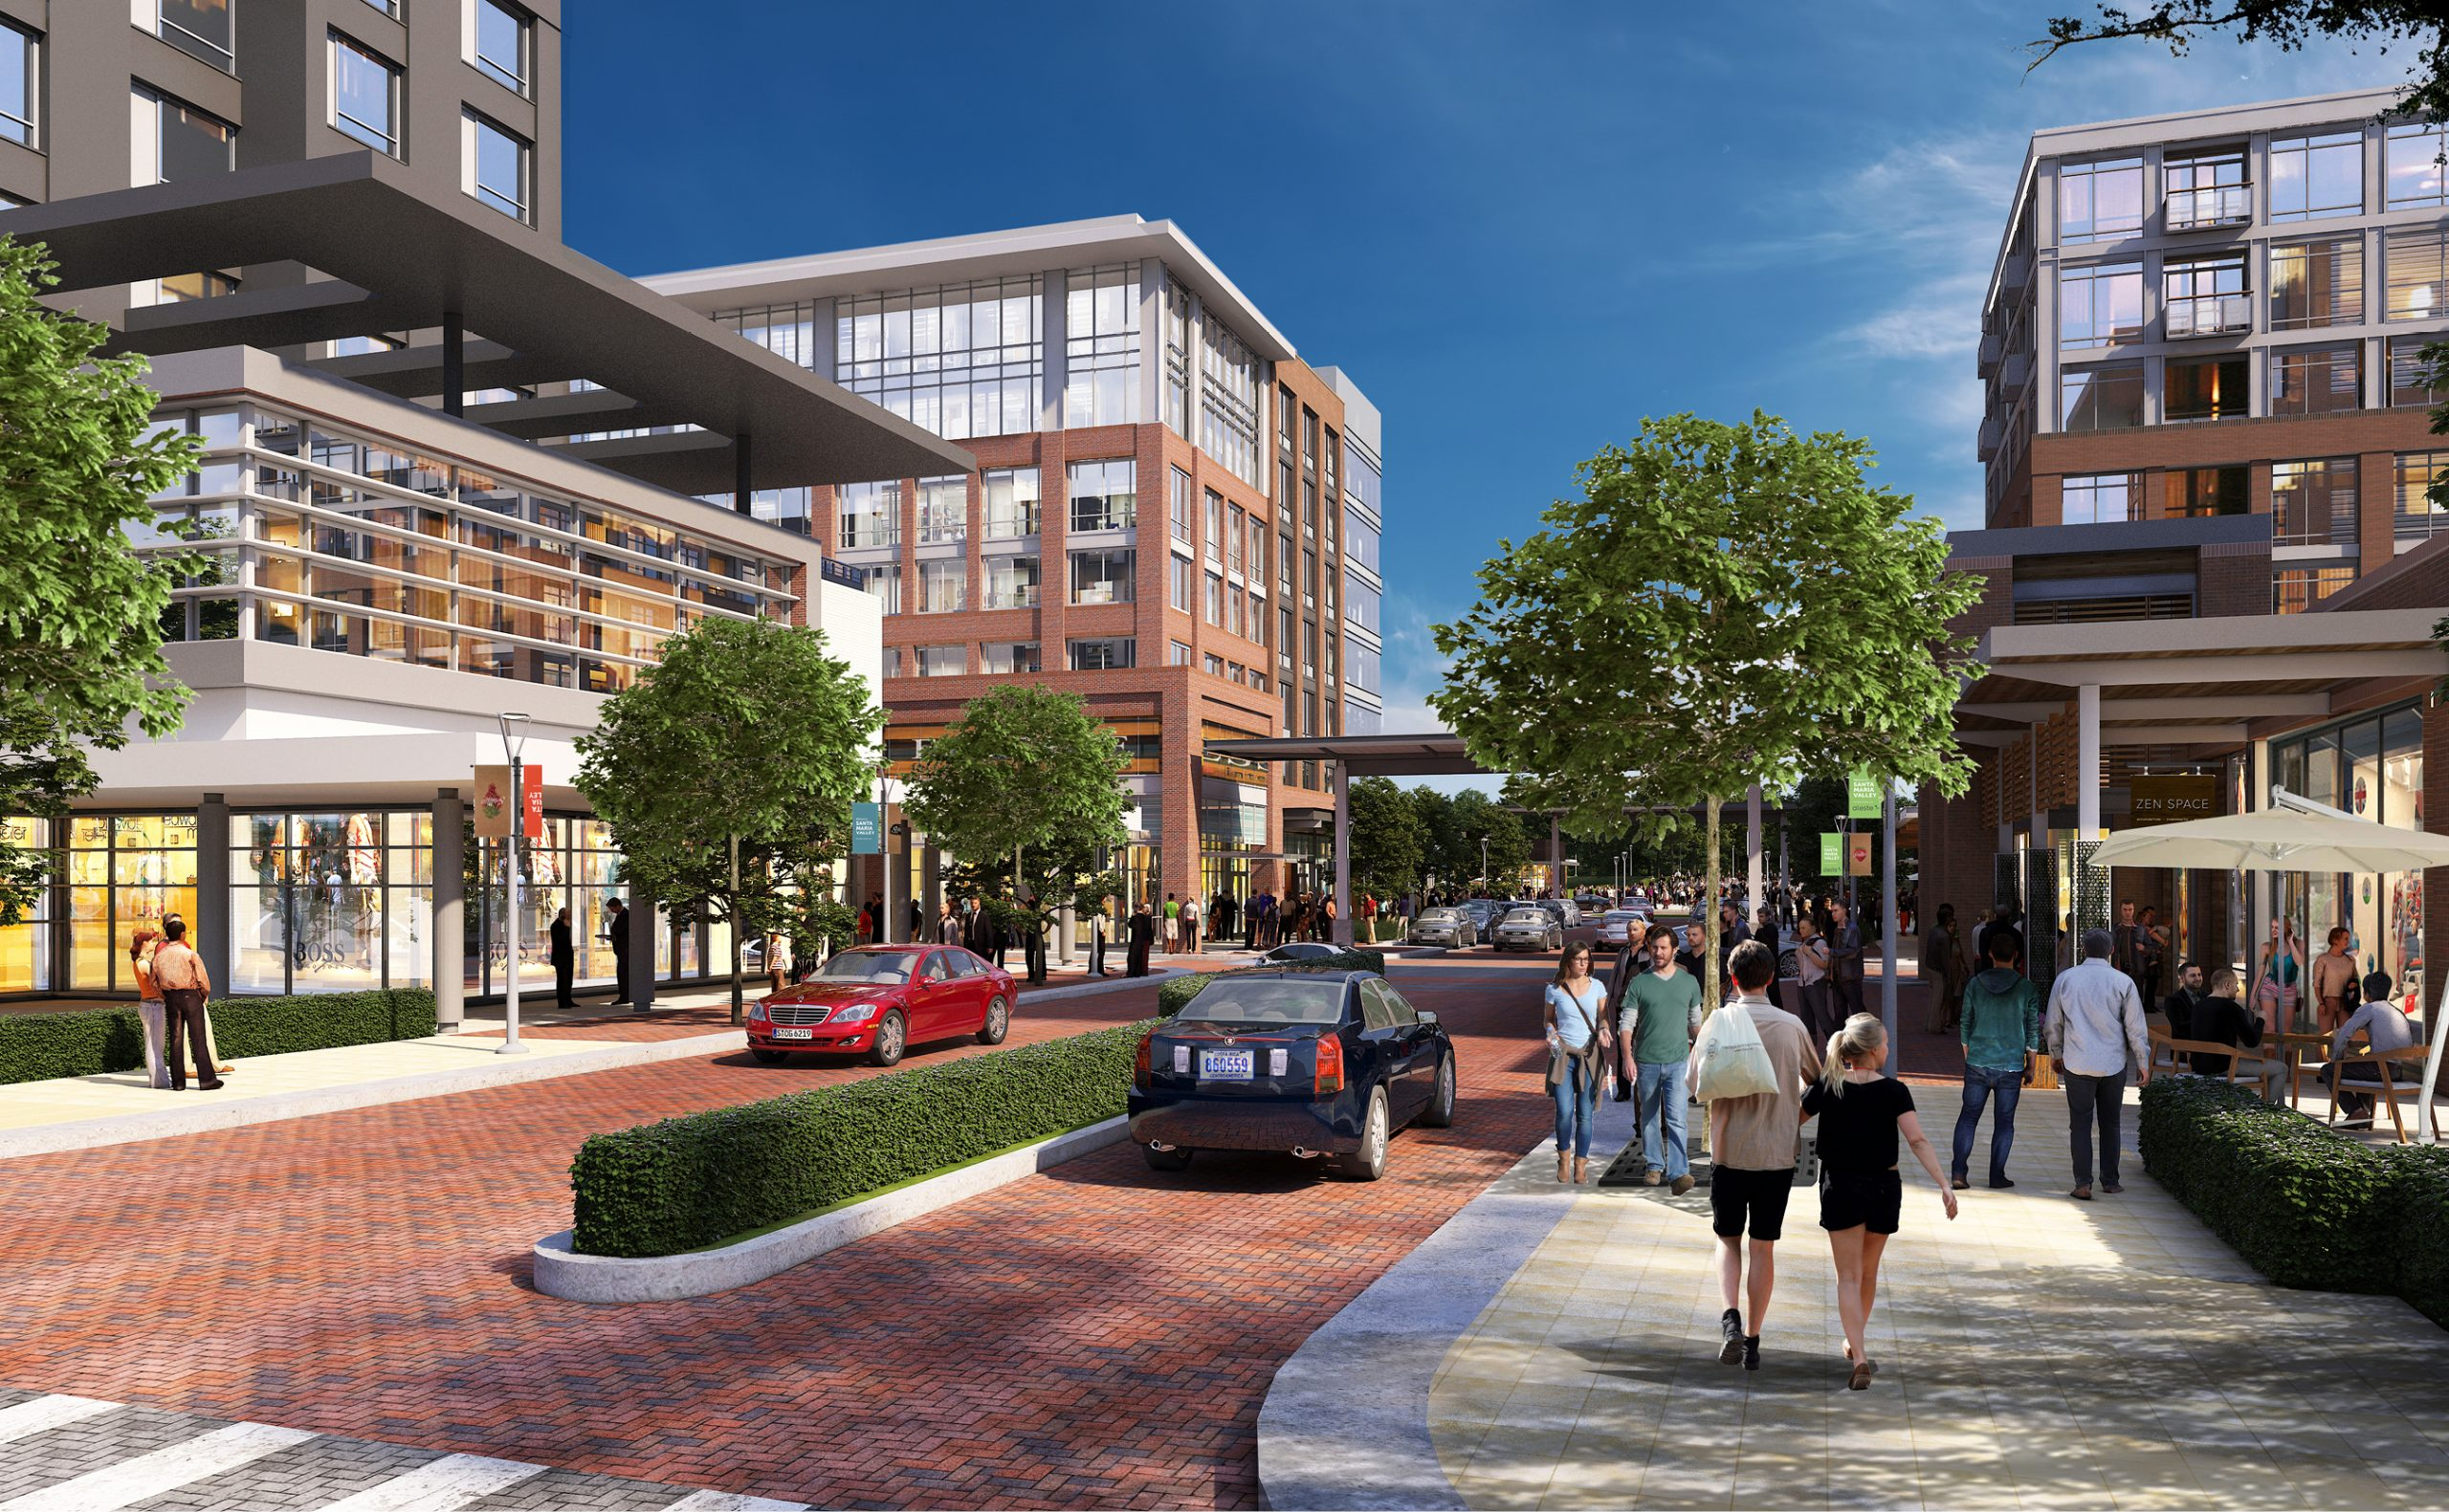 integrating residential to create mixed-use communities